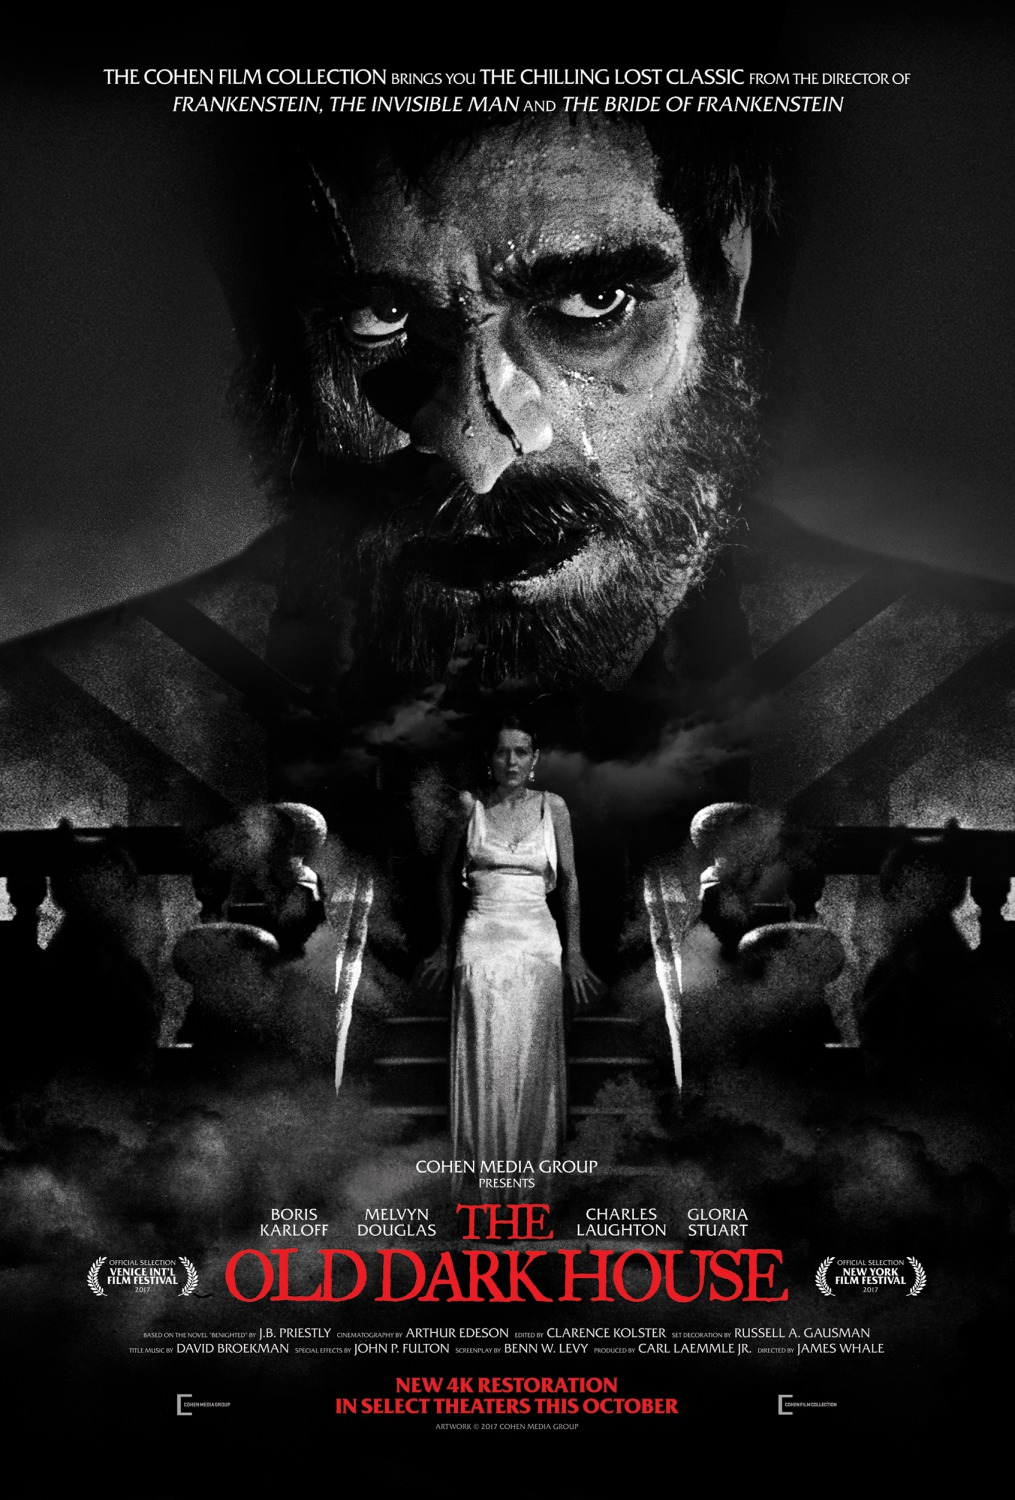 Extra Large Movie Poster Image for The Old Dark House (#2 of 2)